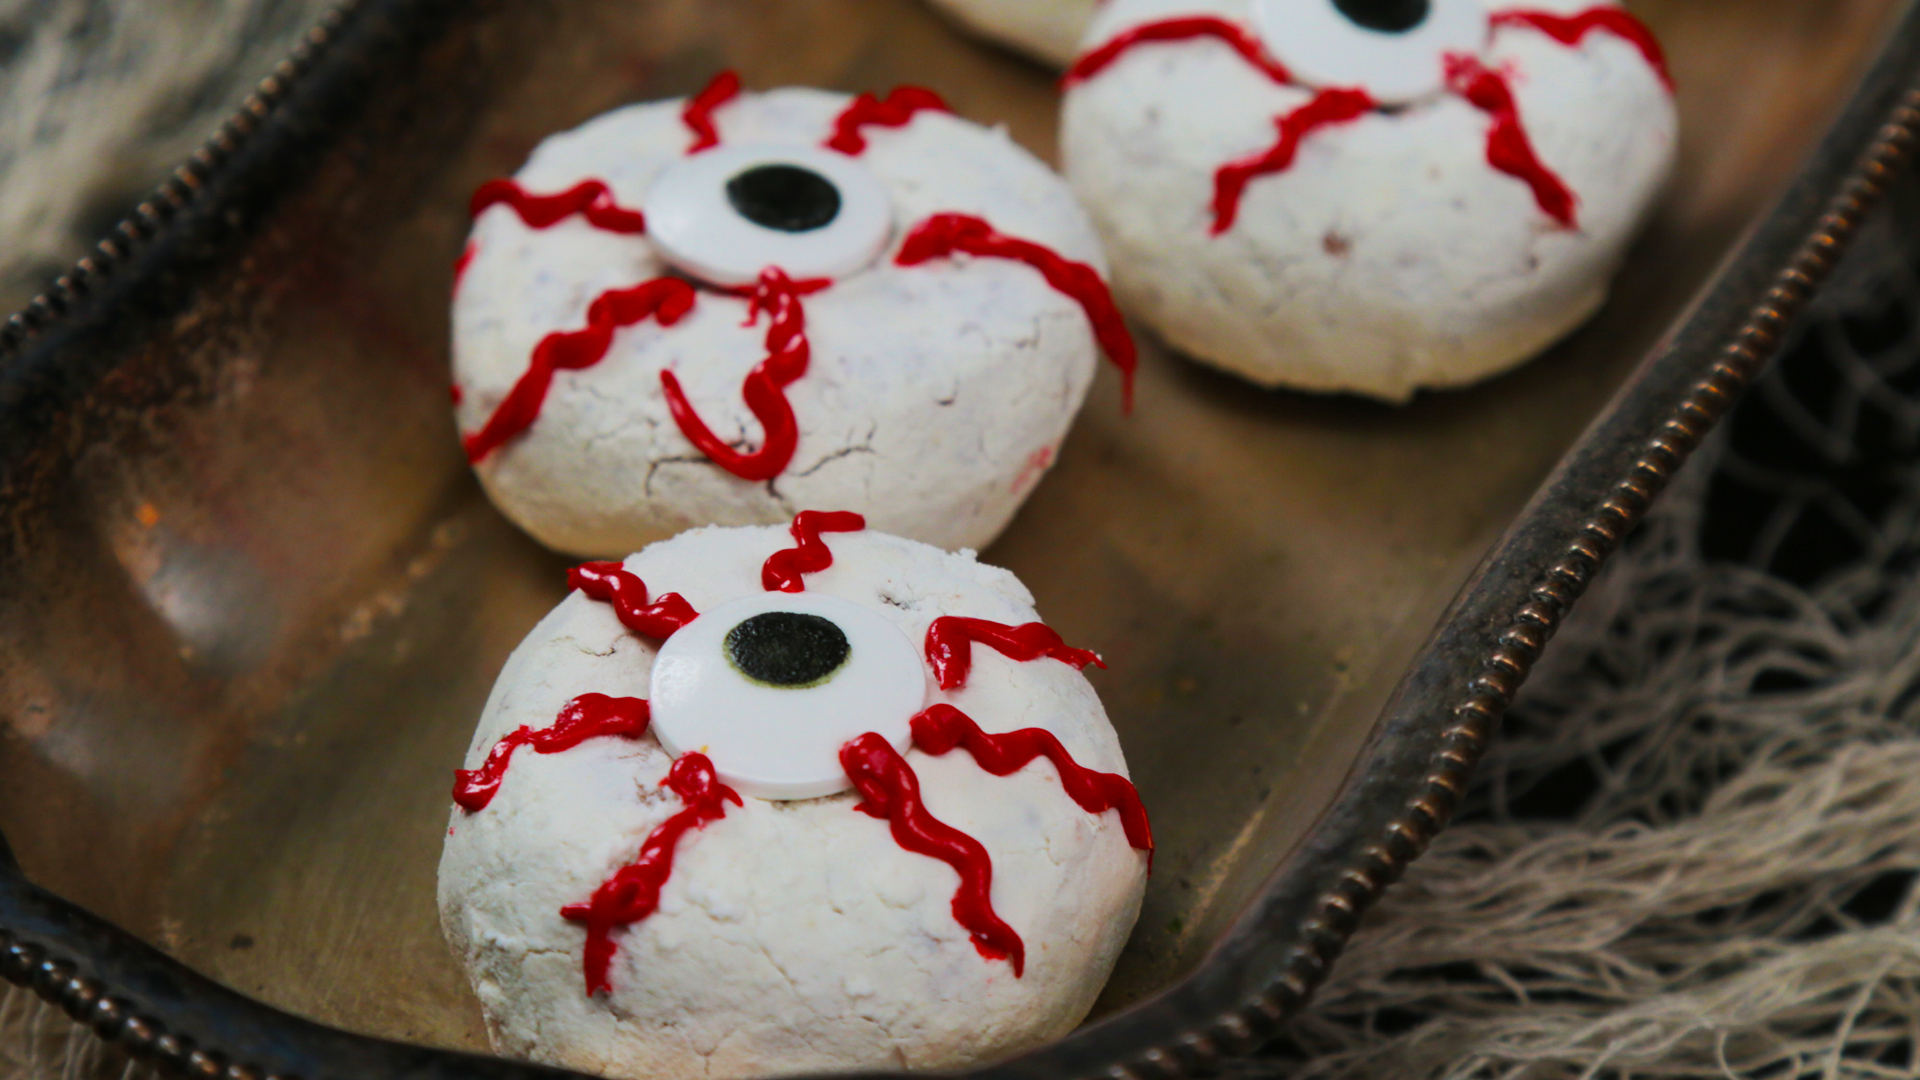 20 of the Most Epic Halloween Food-Craft Ideas on Pinterest